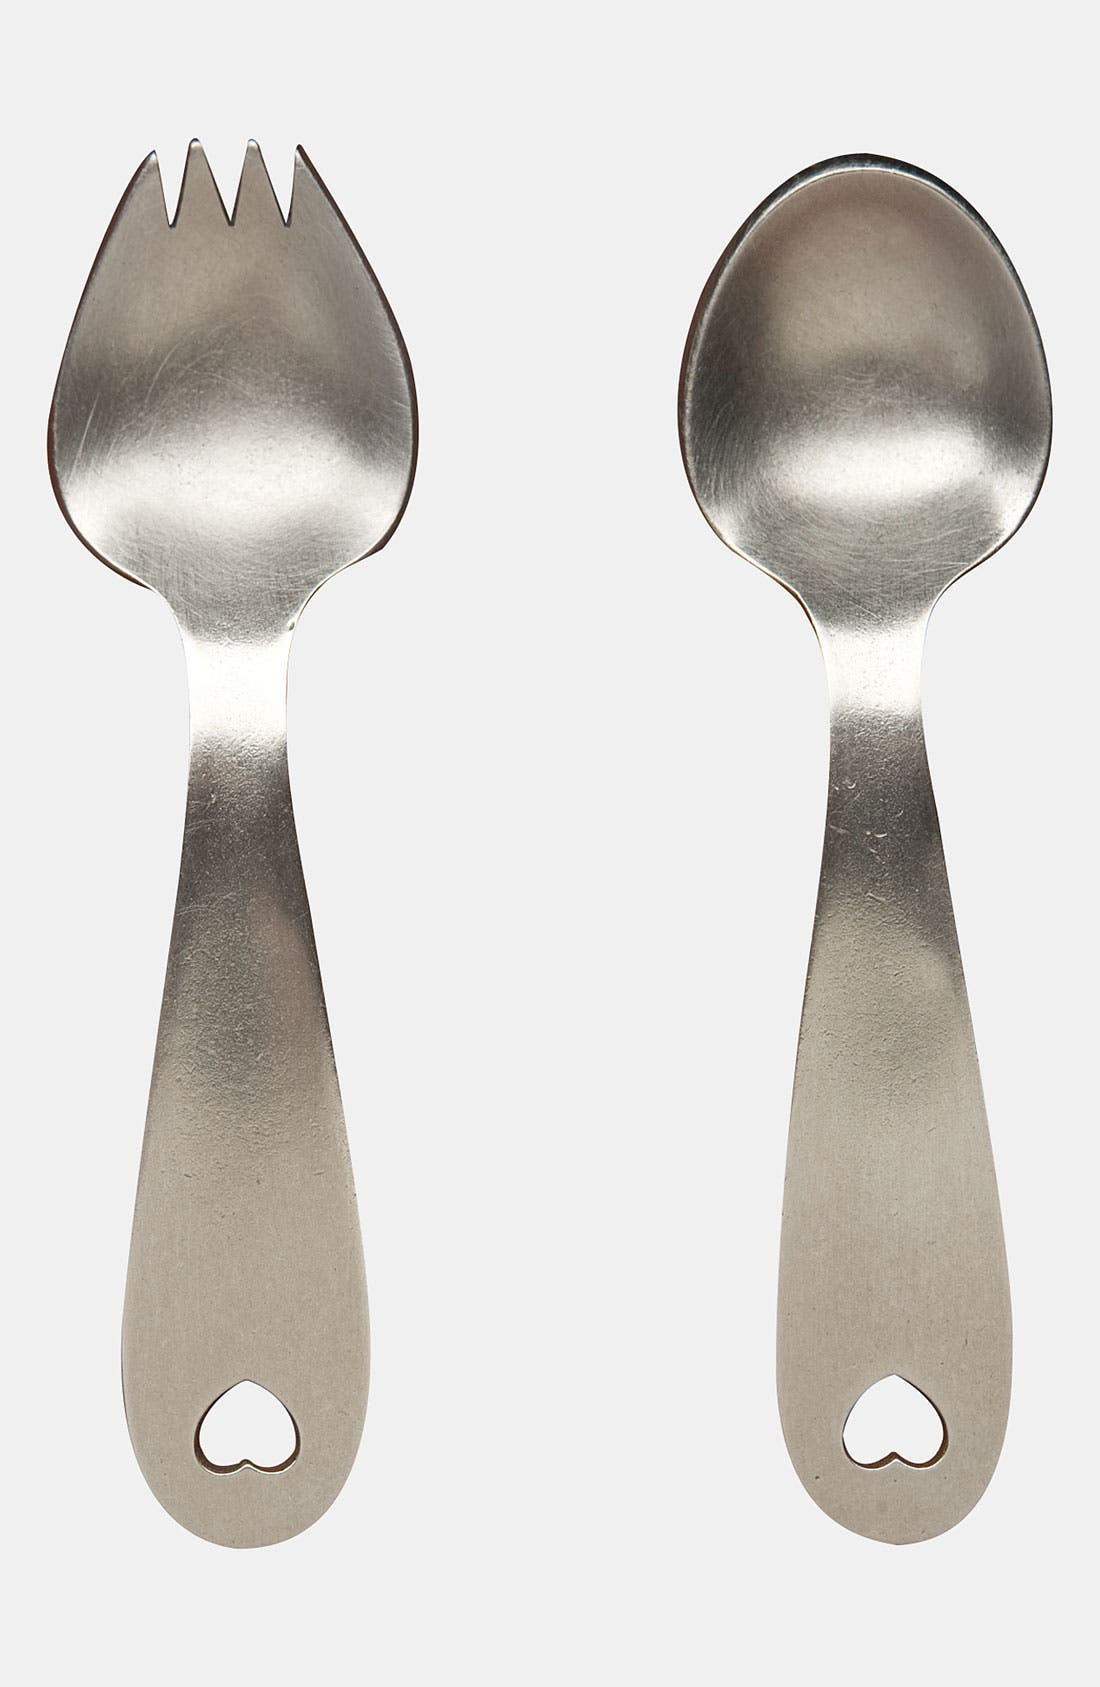 Main Image - Beehive Kitchenware 'Heart' Keepsake Spoon & Fork